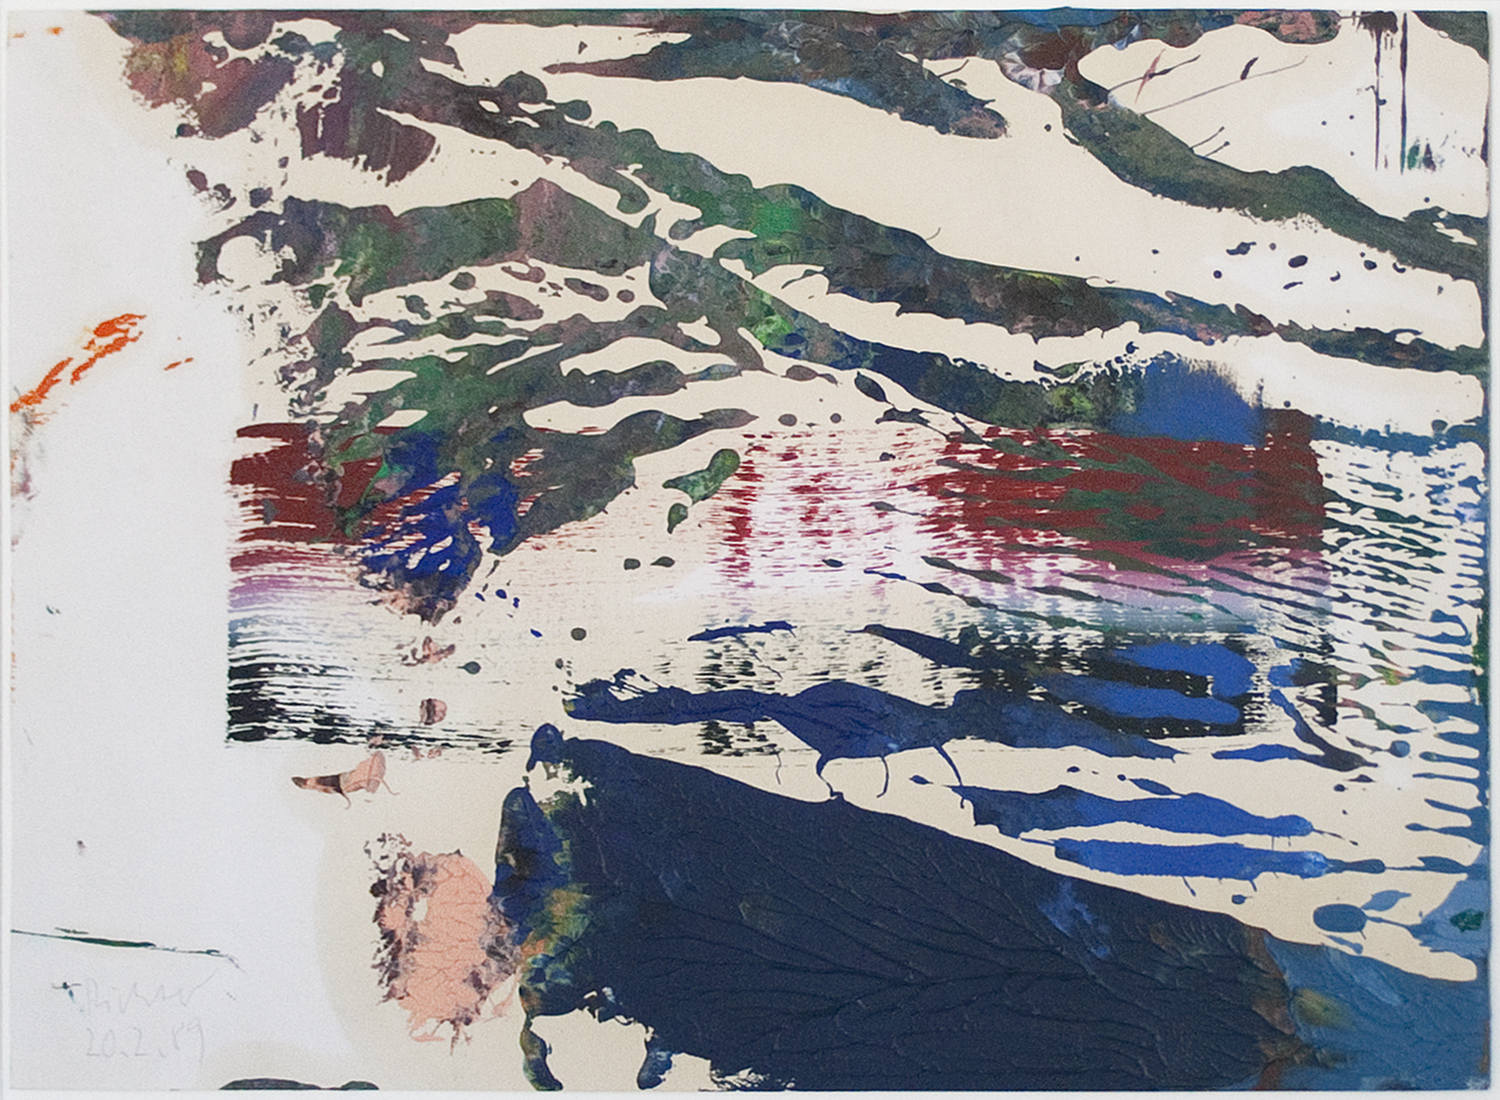 Gerhard Richter Untitled 1989 oil on paper 8 1/4 x 12 1/4 inches